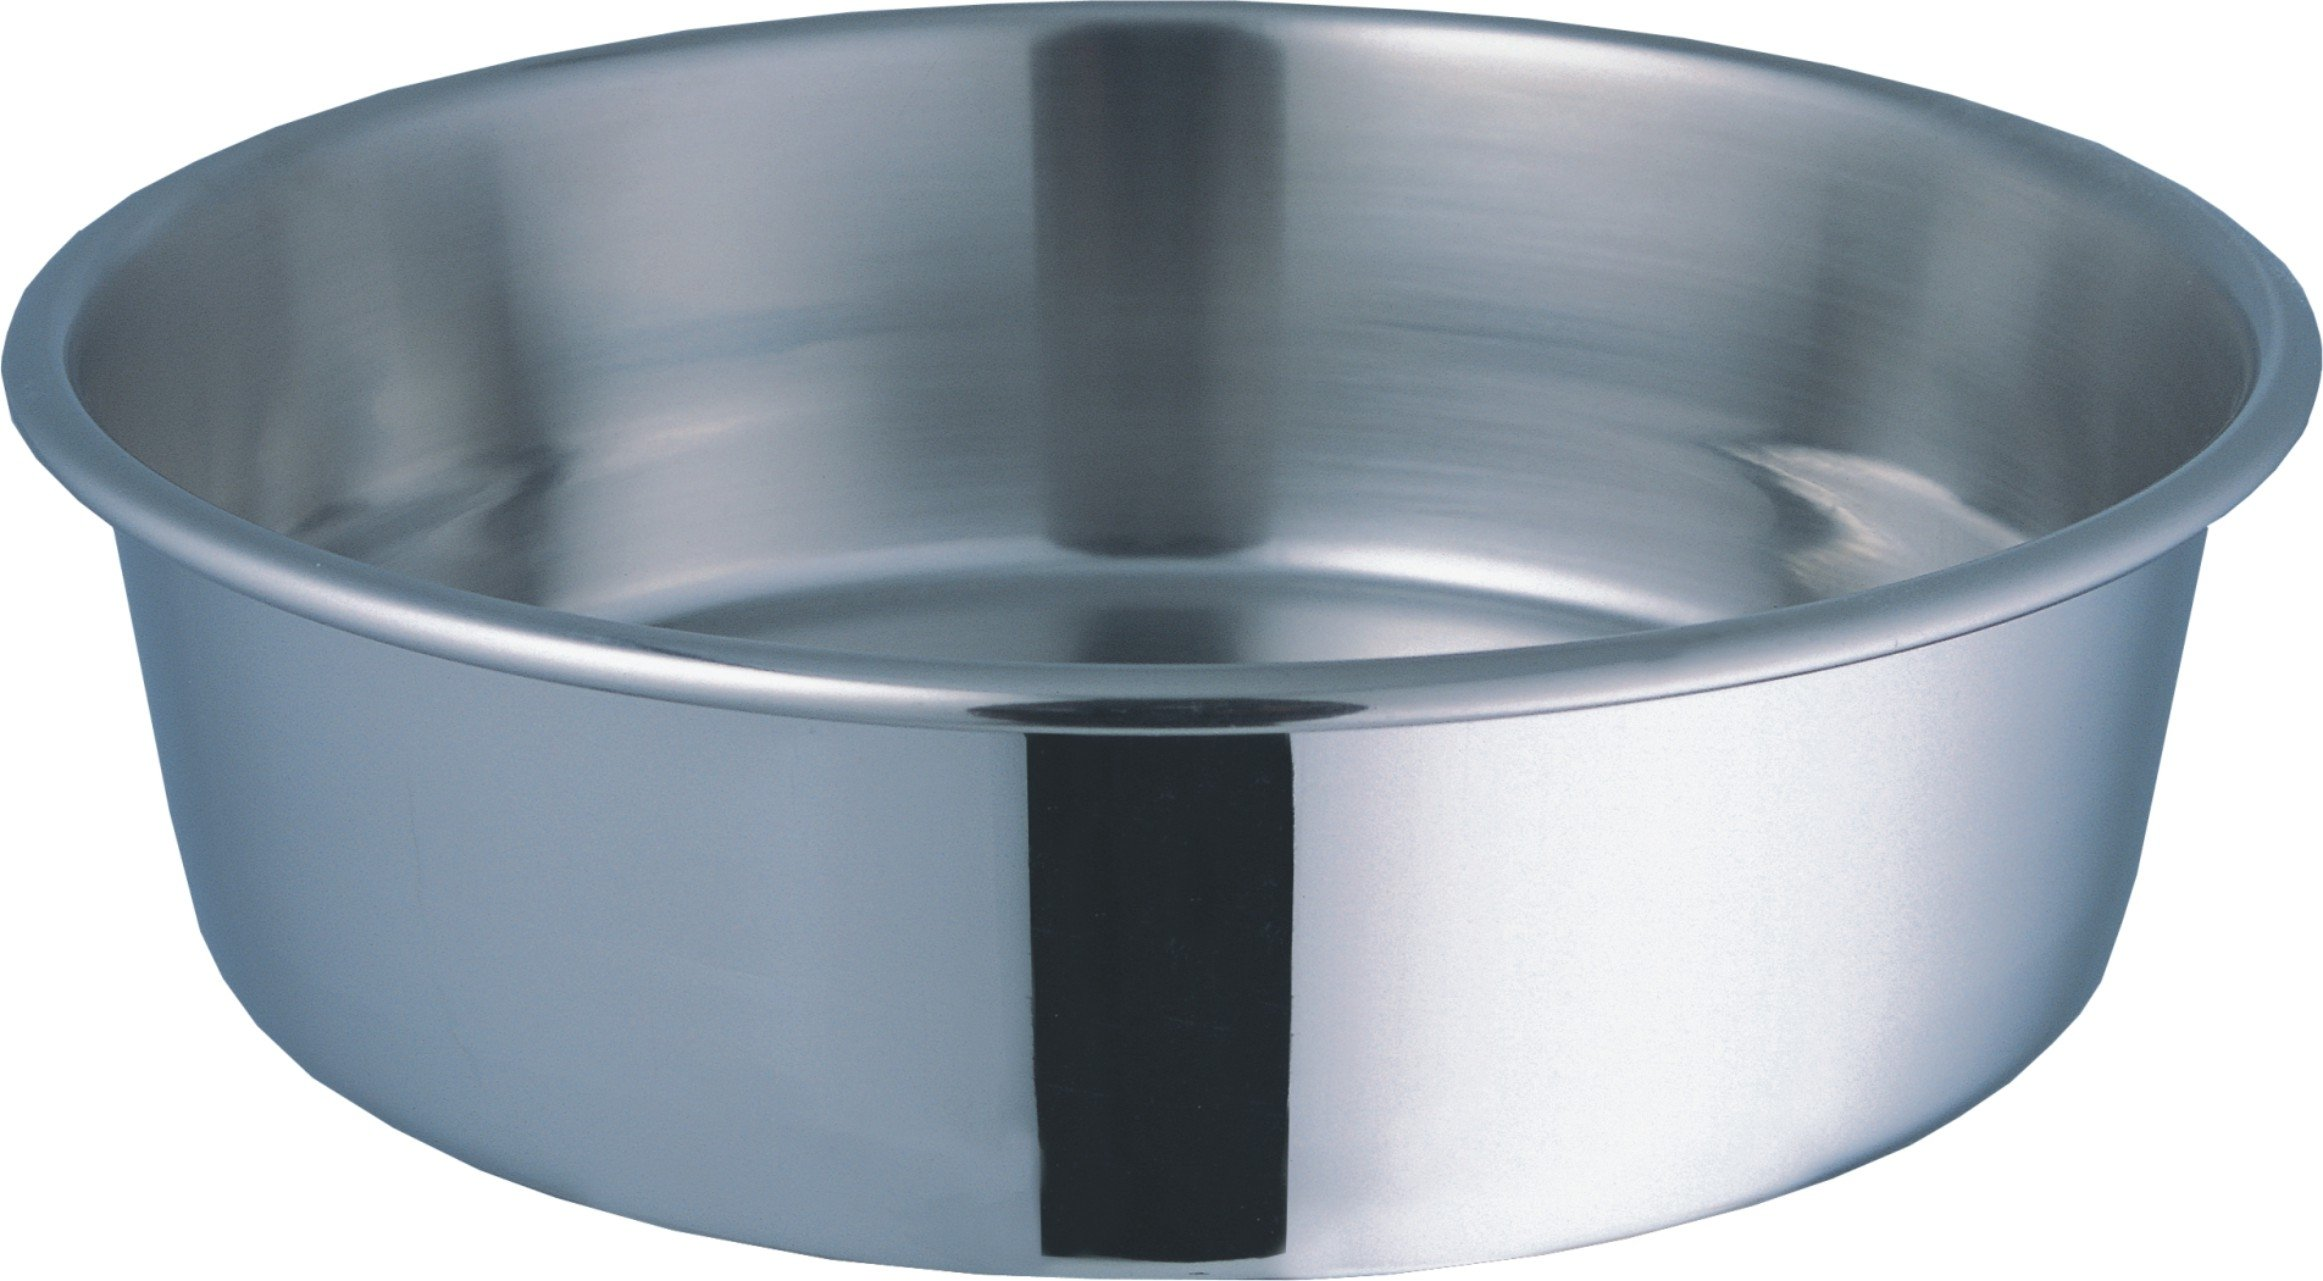 Indipets Stainless Steel Extra Heavy Duty Pet Bowl, 4-Quart